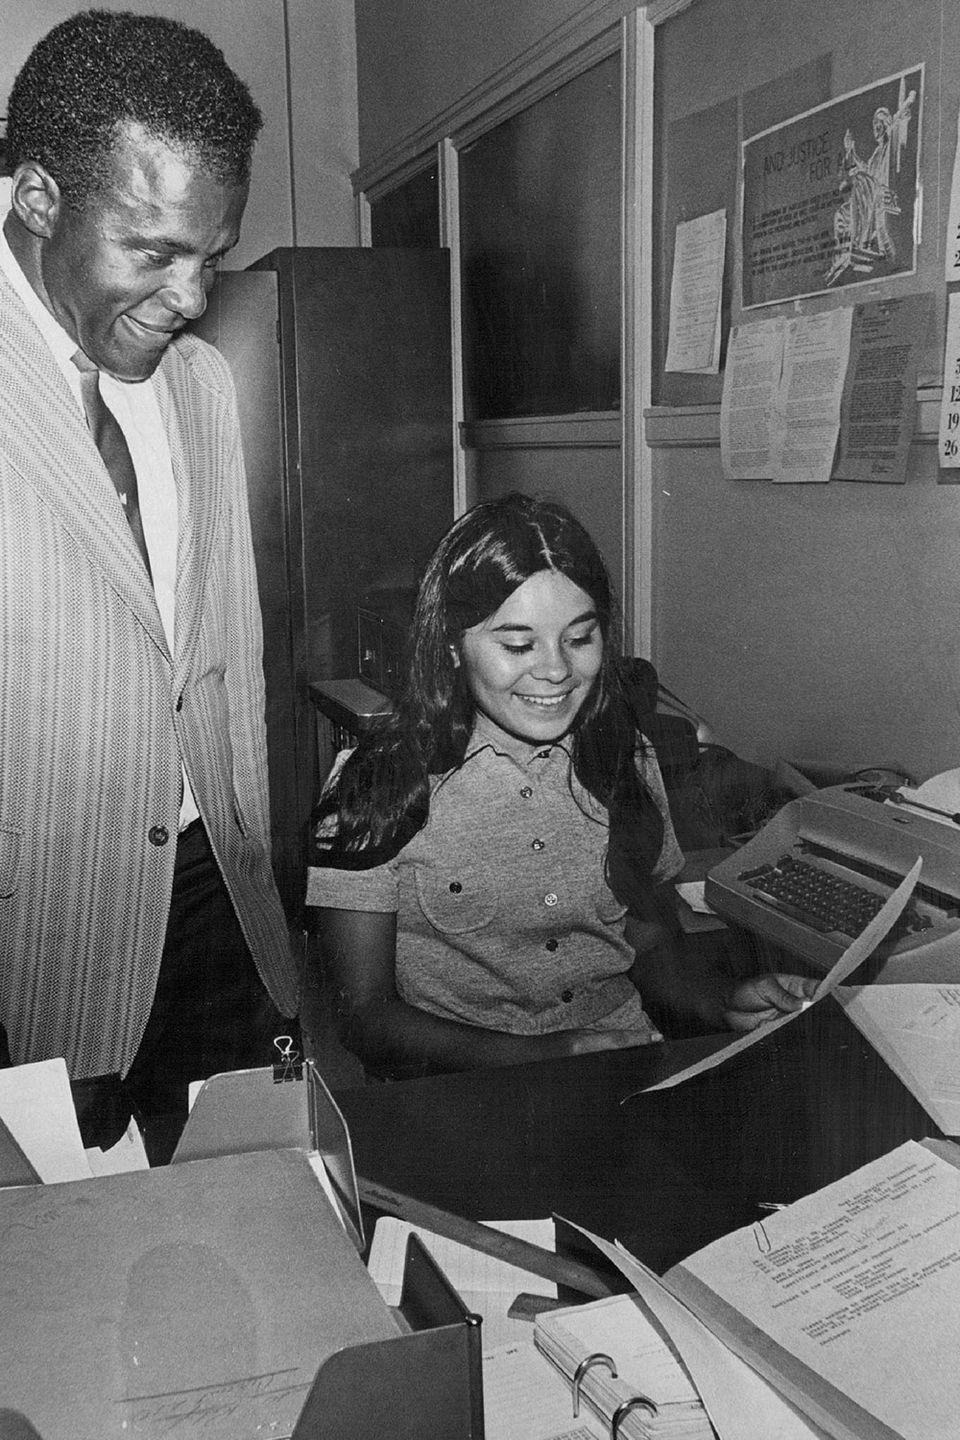 <p>A young girl received an award for her hard work as a junior clerk at the U.S.D.A. during the summer of 1971.</p>